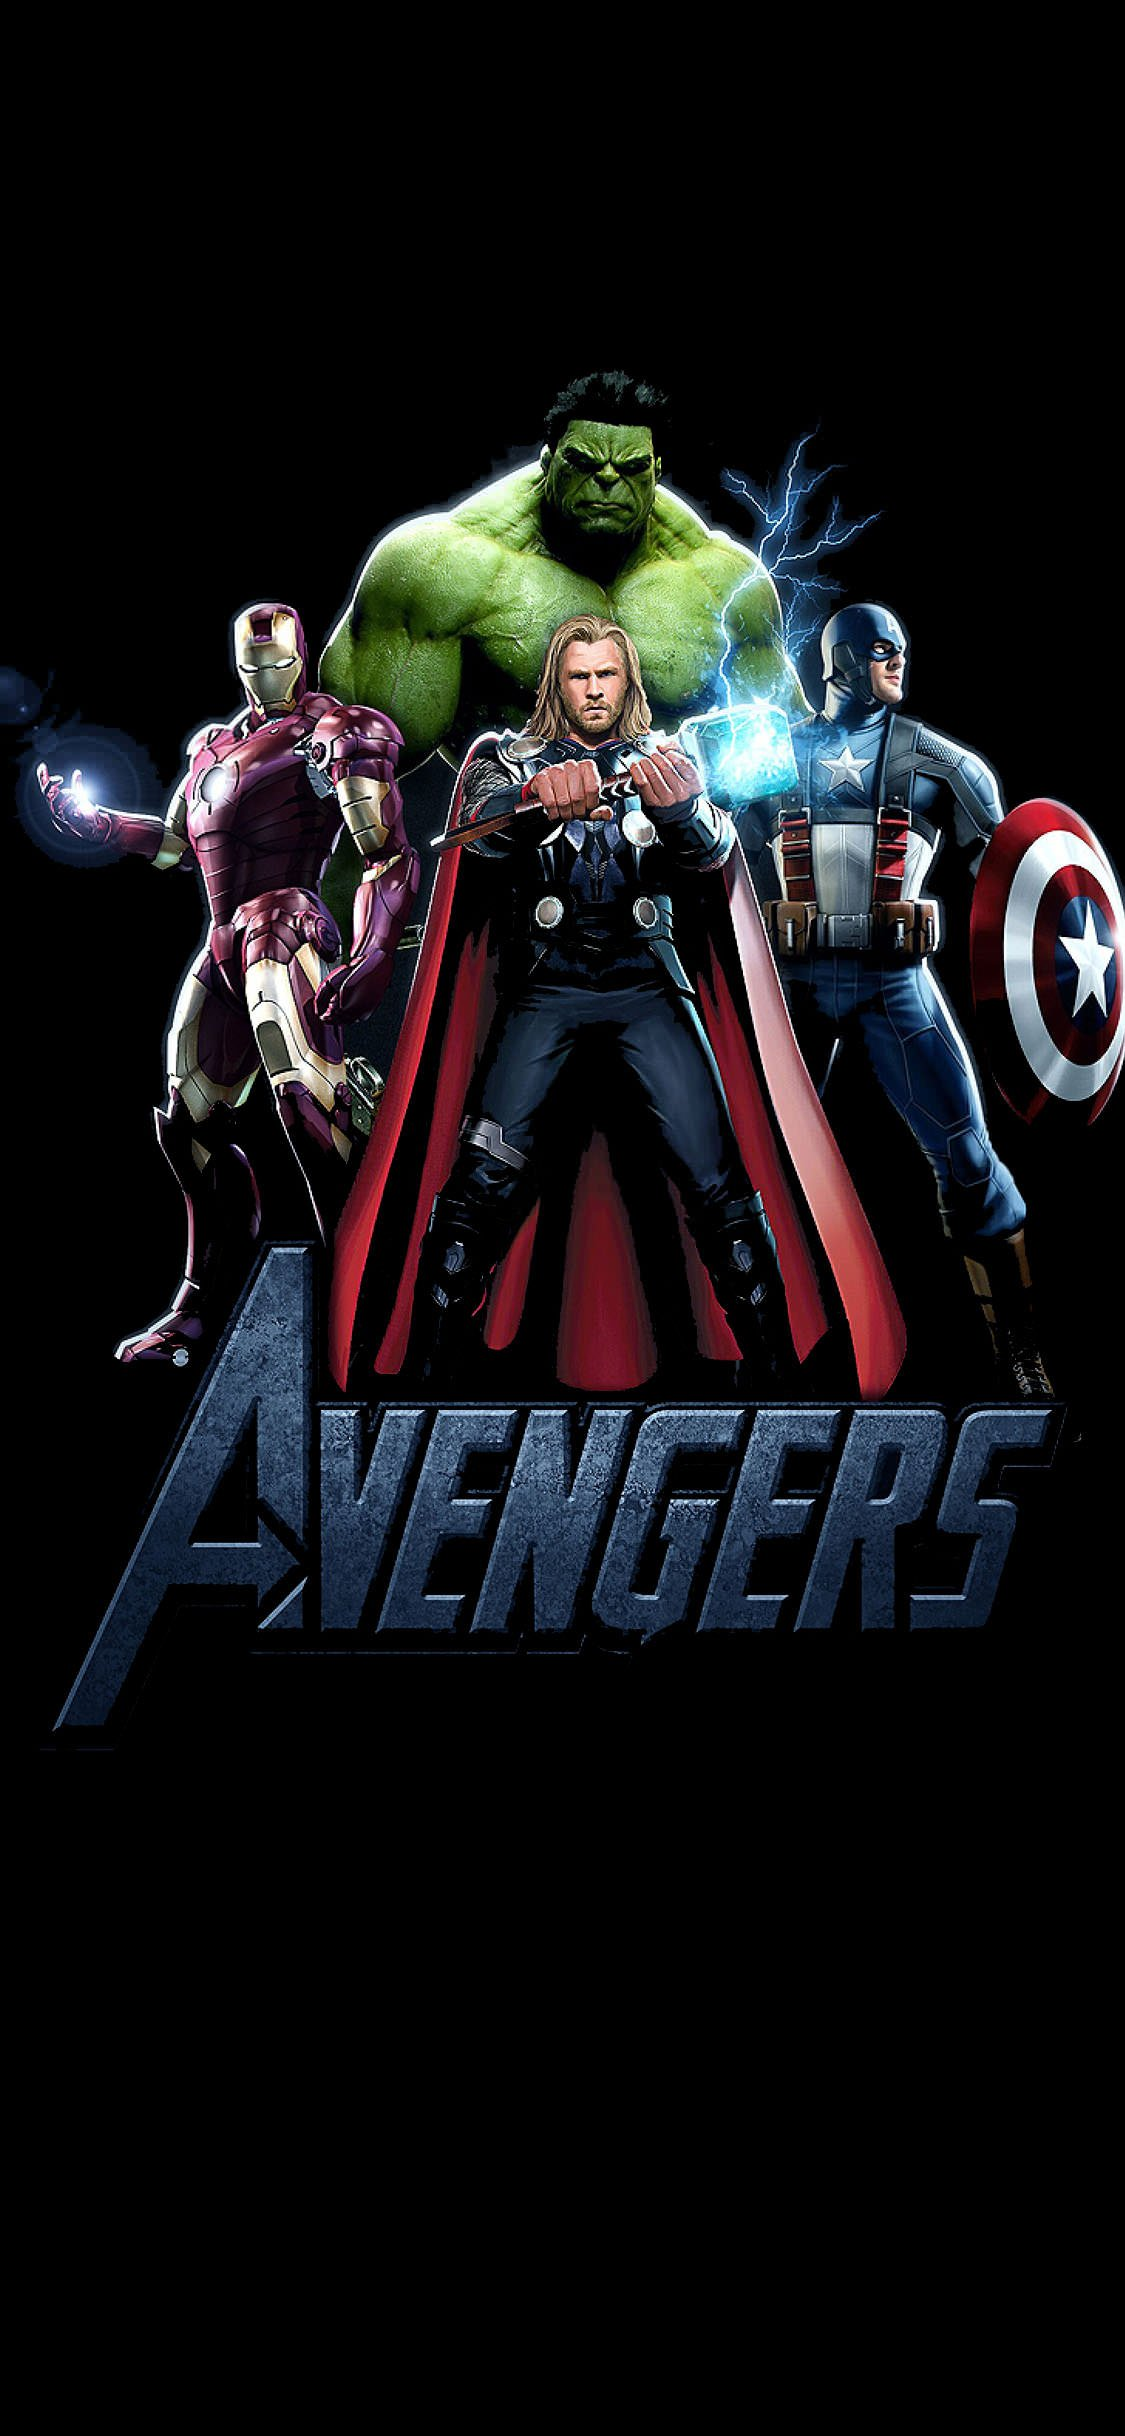 25 Best Avengers Iphone Wallpapers 2018 Templatefor